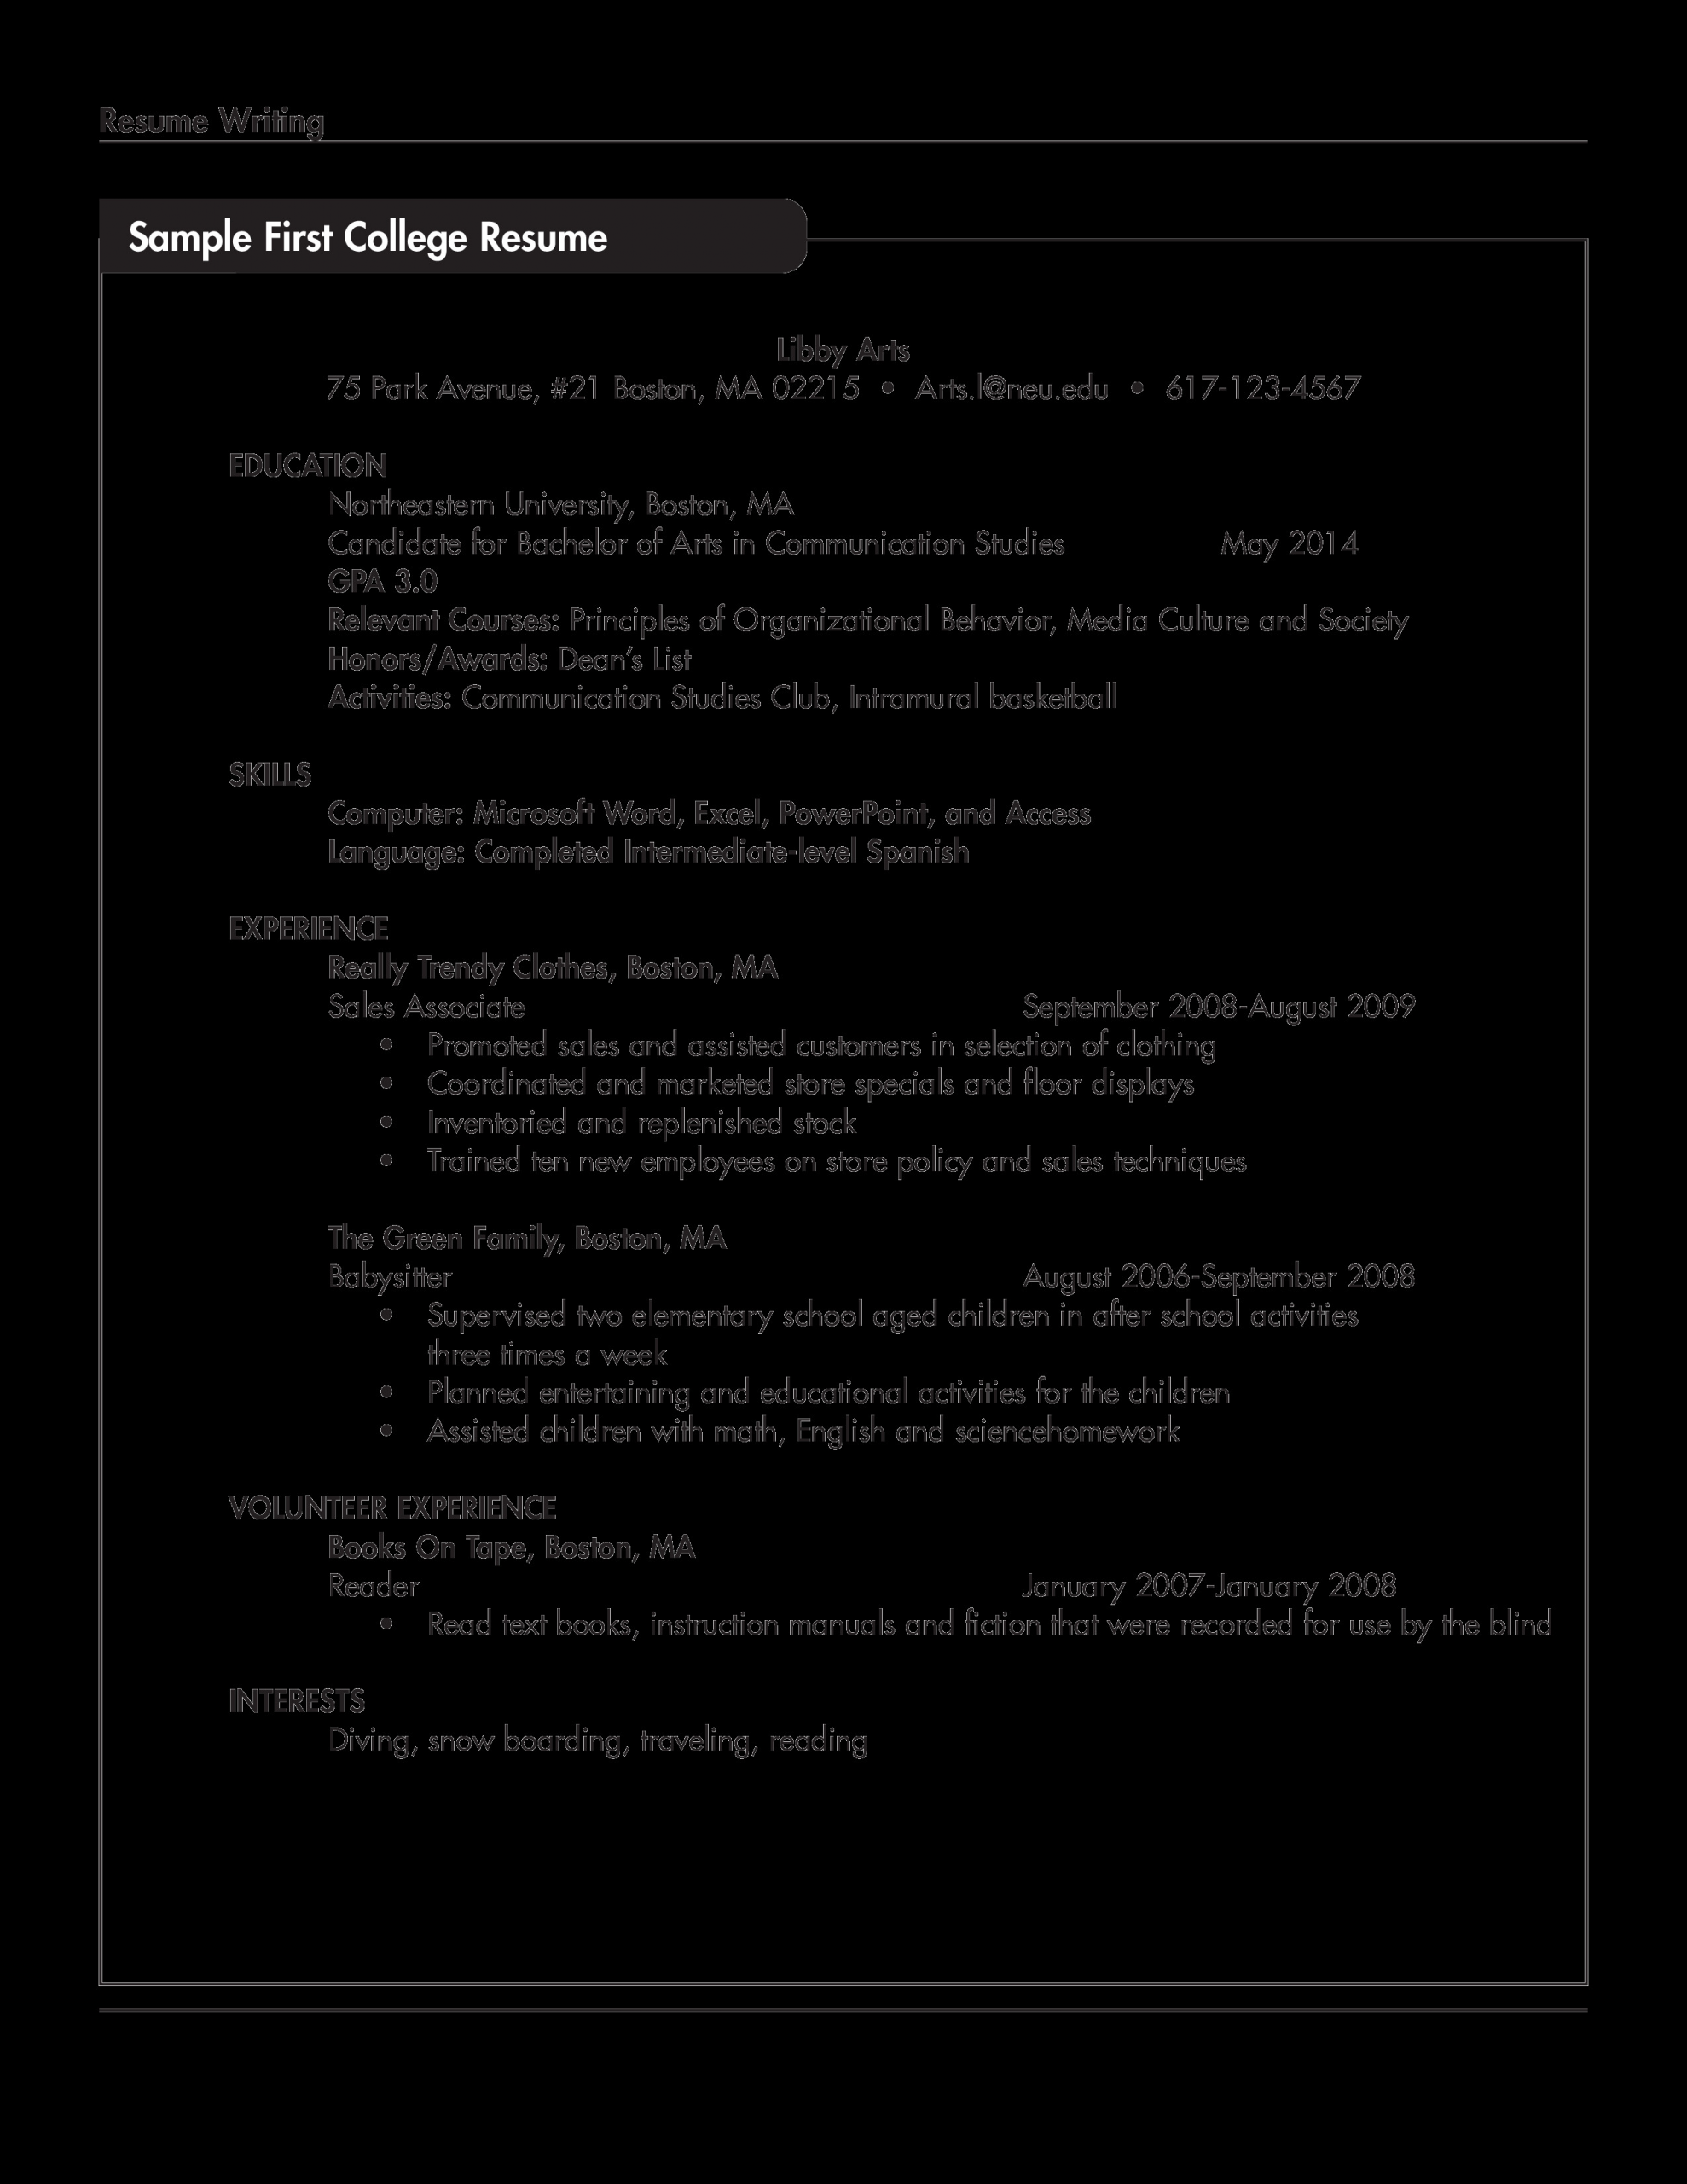 Sample Resume for someone with No Job Experience 免费 Sample Resume for College Student with No Work